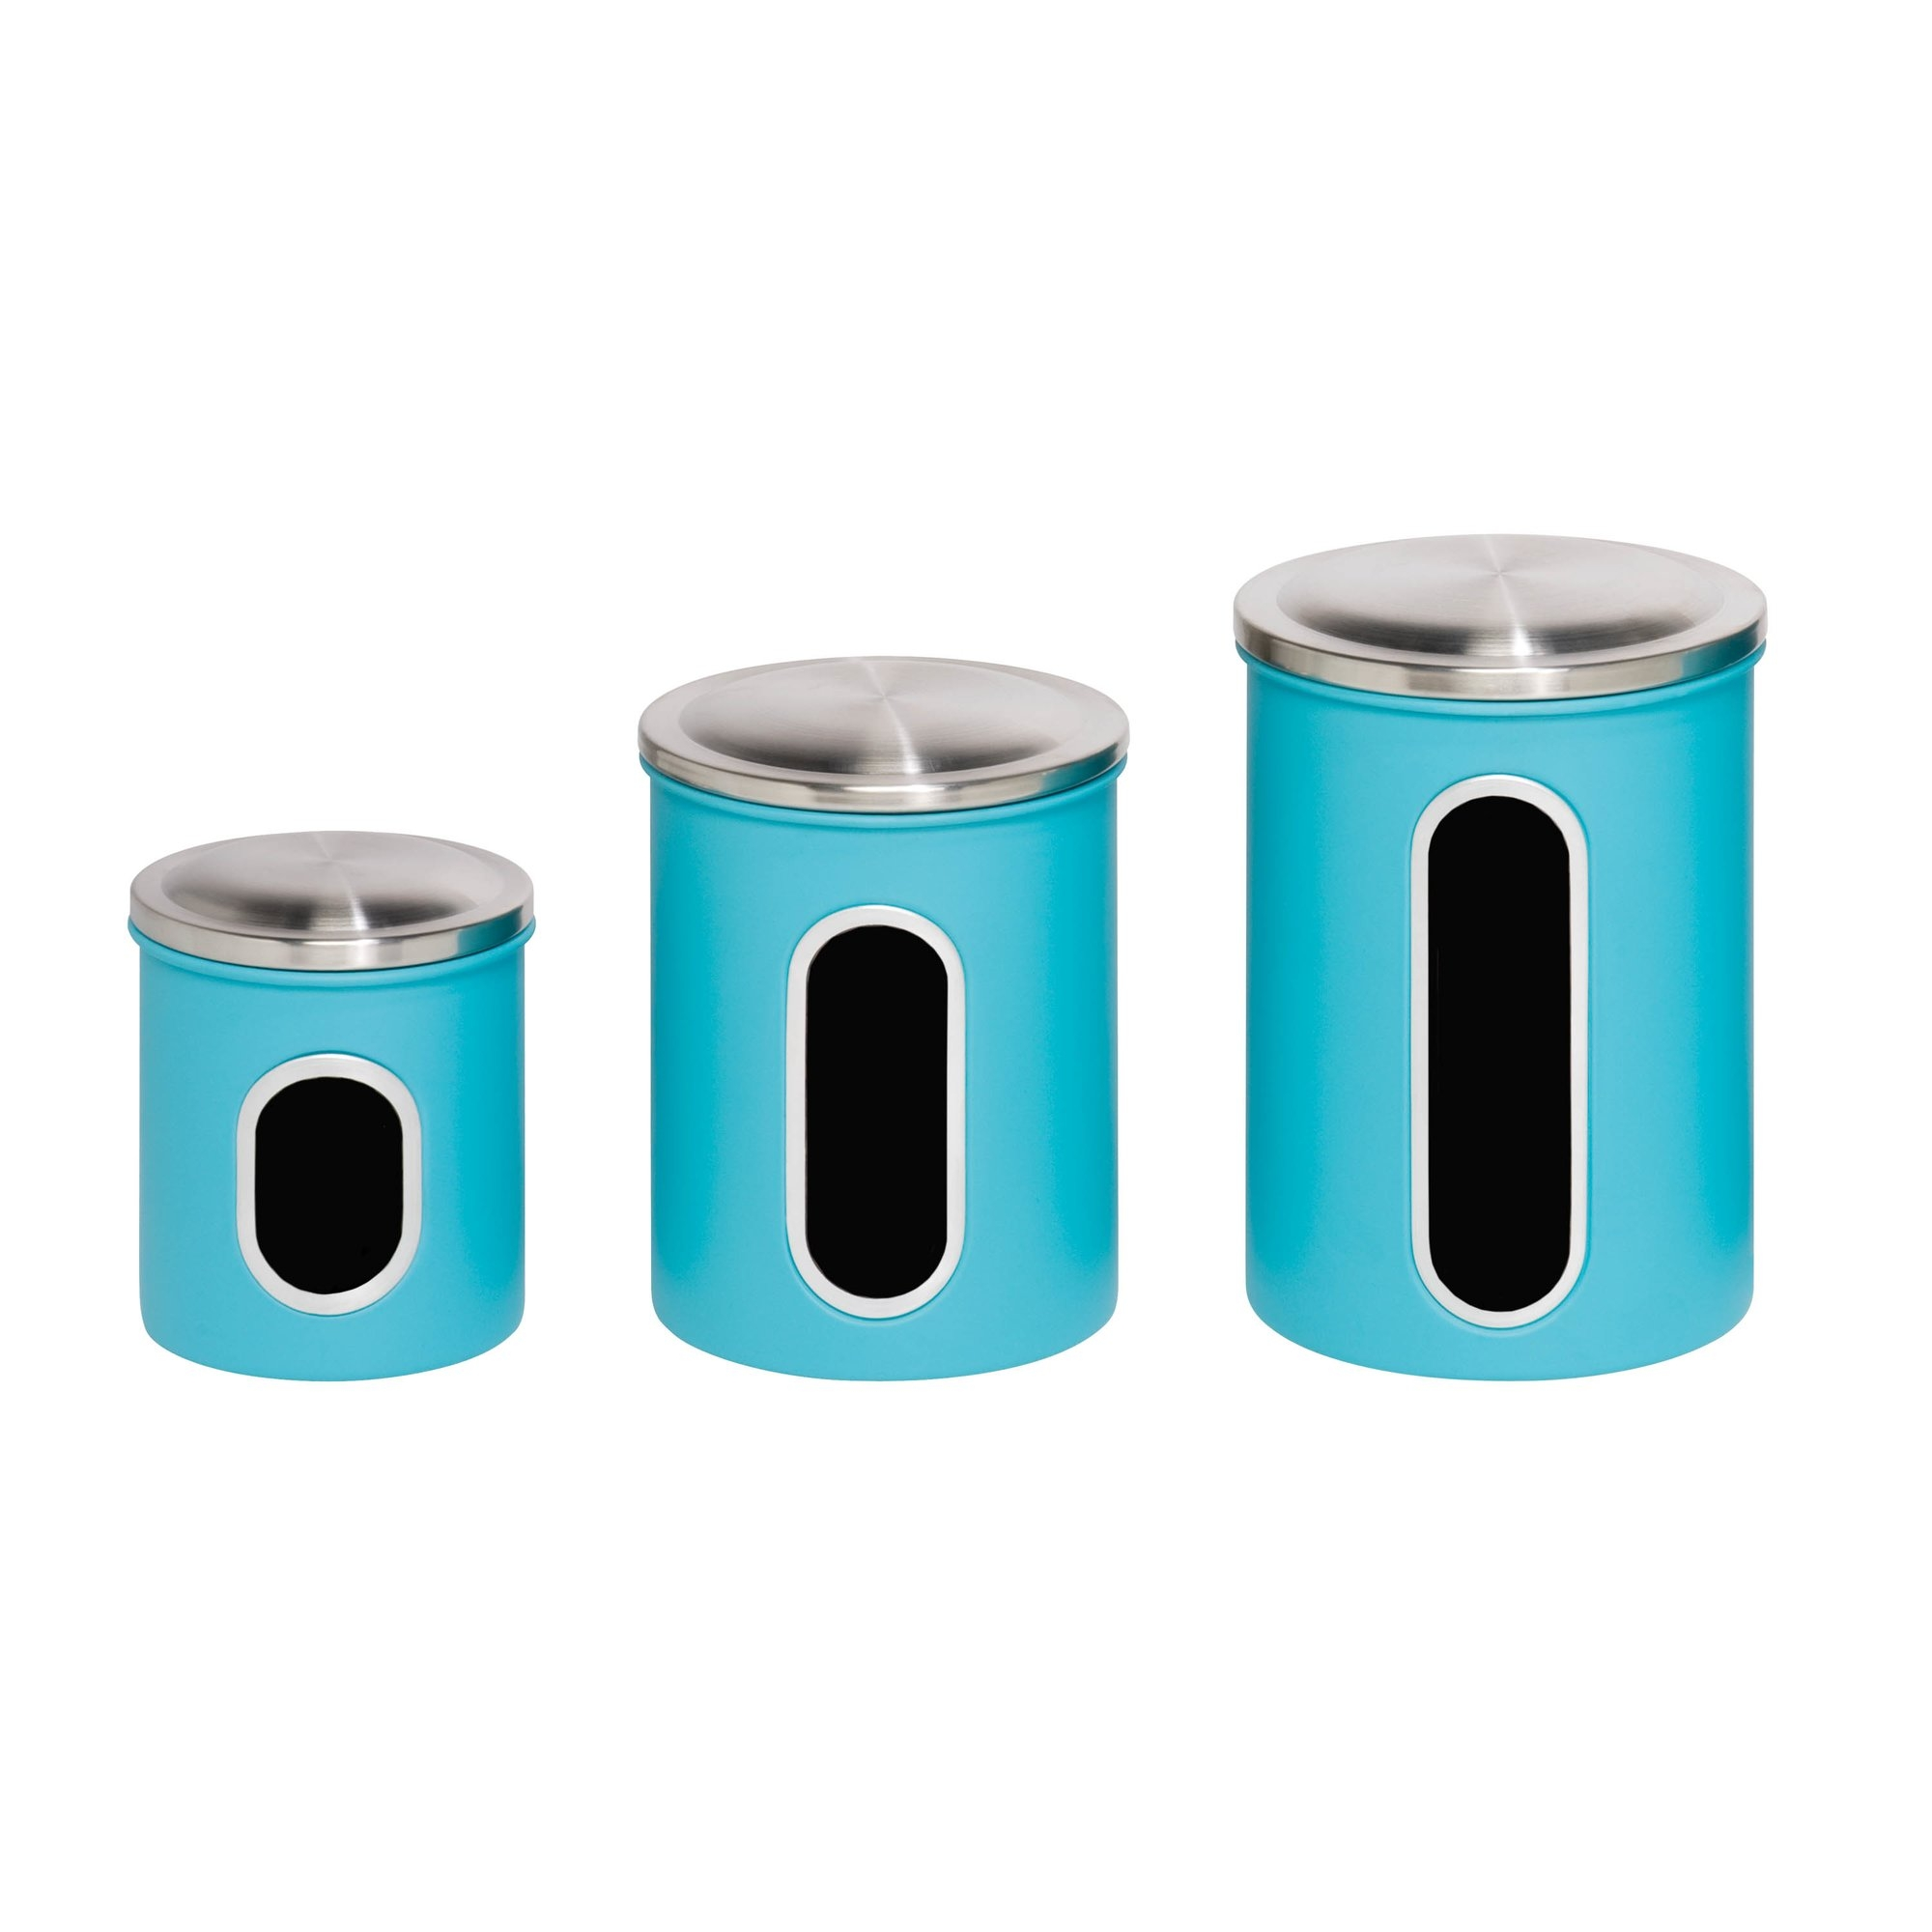 Permalink to Kitchen Storage Canisters Sets